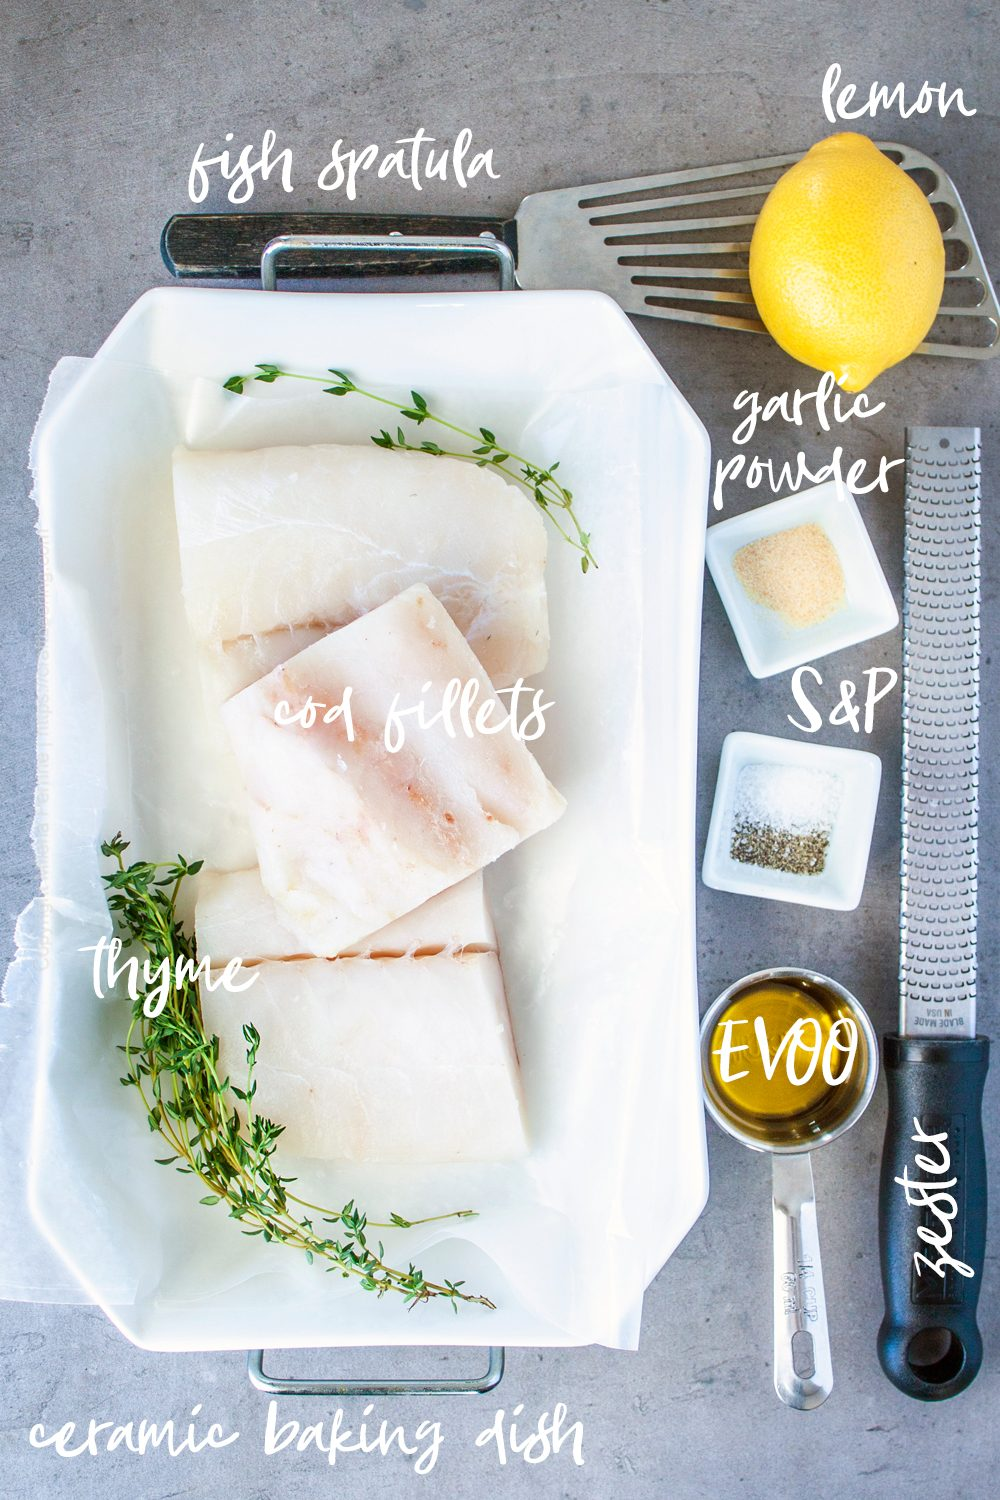 Raw cod fish fillets, lemon, thyme, olive oil and seasonings. Everything needed for this baked cod recipe.